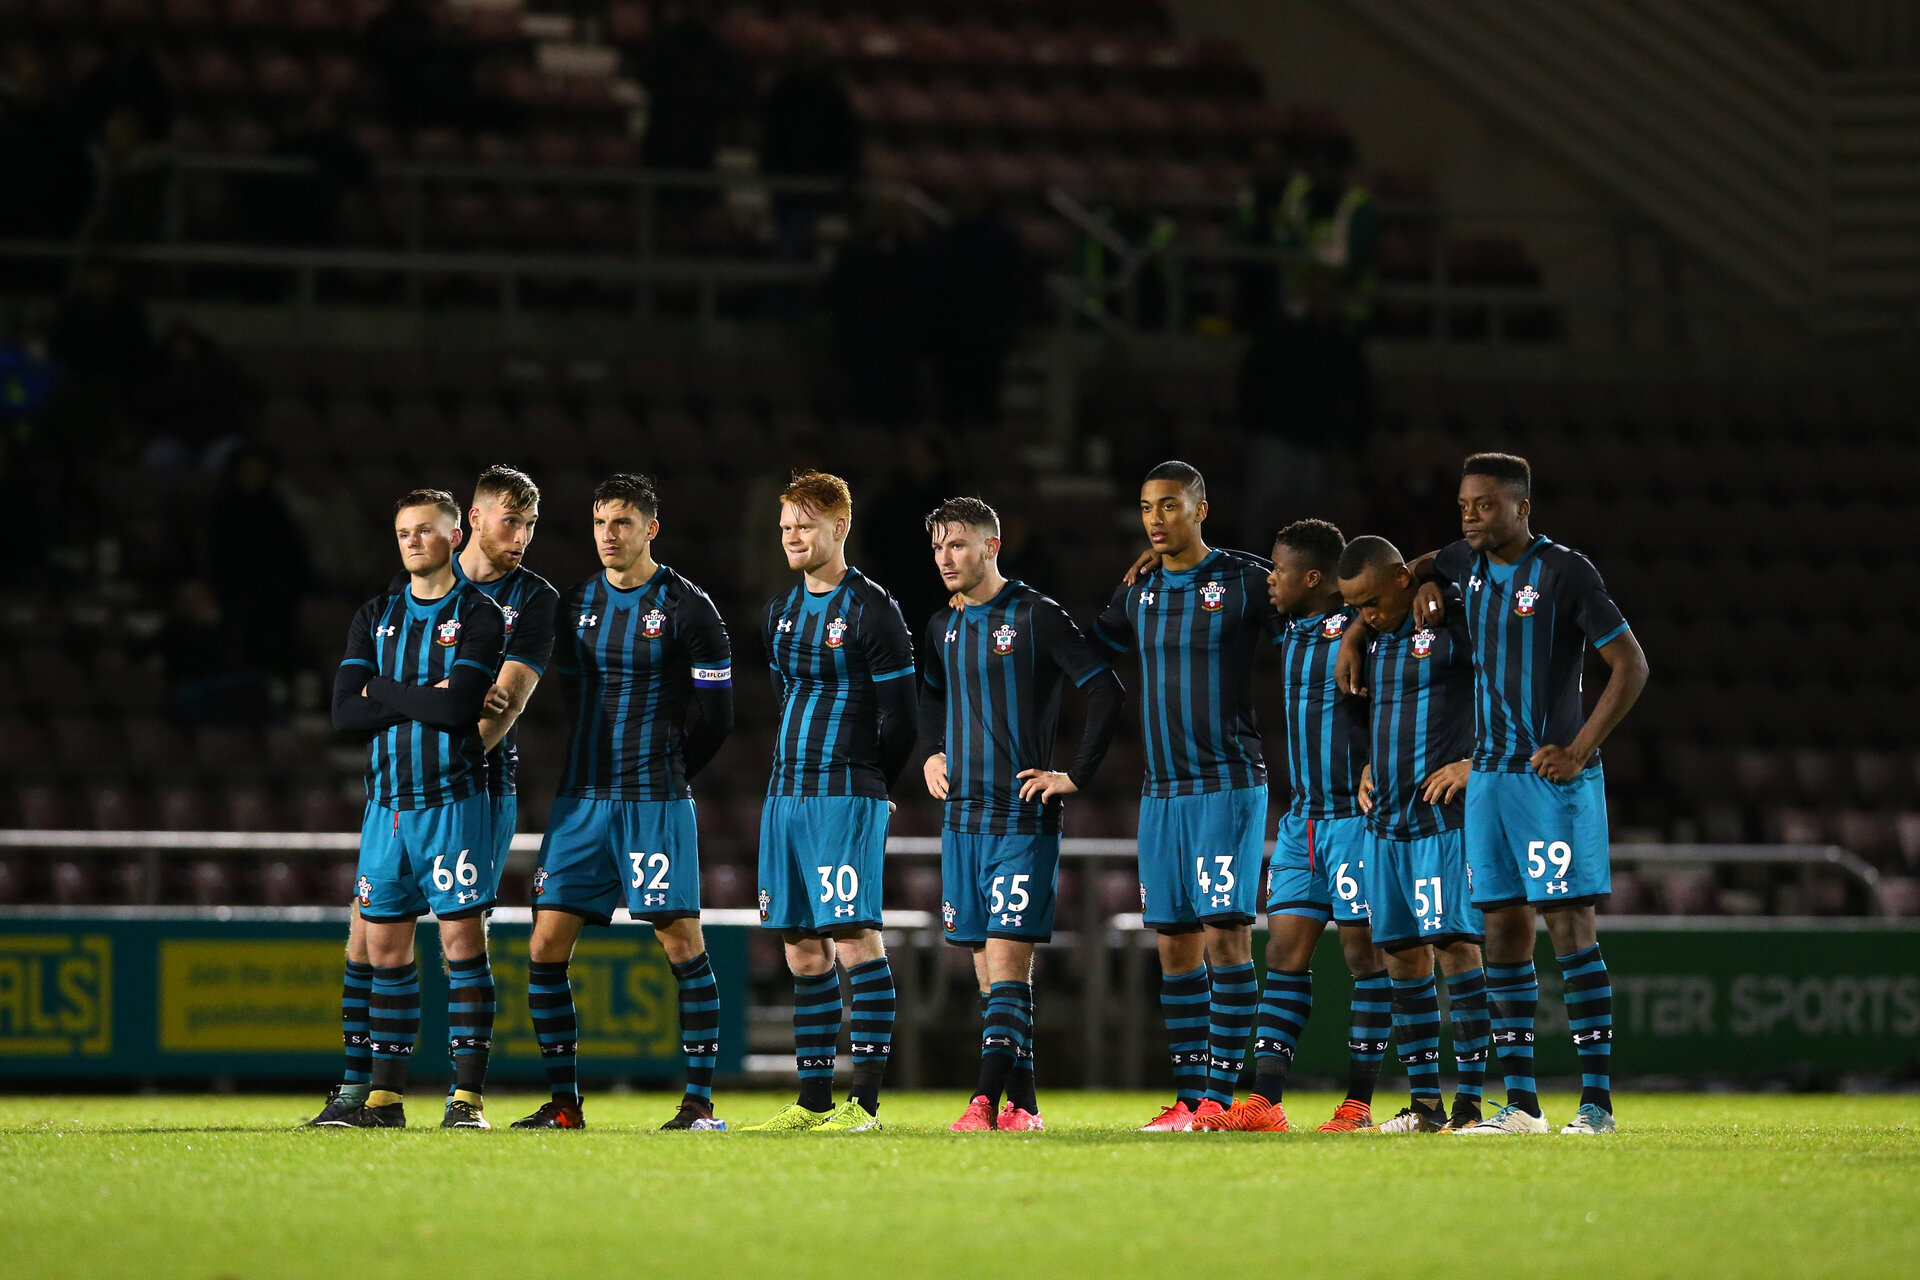 NORTHAMPTON, ENGLAND - NOVEMBER 07: Southampton await the result from penalty shoot out during the match at Sixfields Stadium for the Checkatrade Trophy match between Southampton FC and Northampton Town on November 7, 2017 in Northampton, England. (Photo by James Bridle - Southampton FC/Southampton FC via Getty Images)